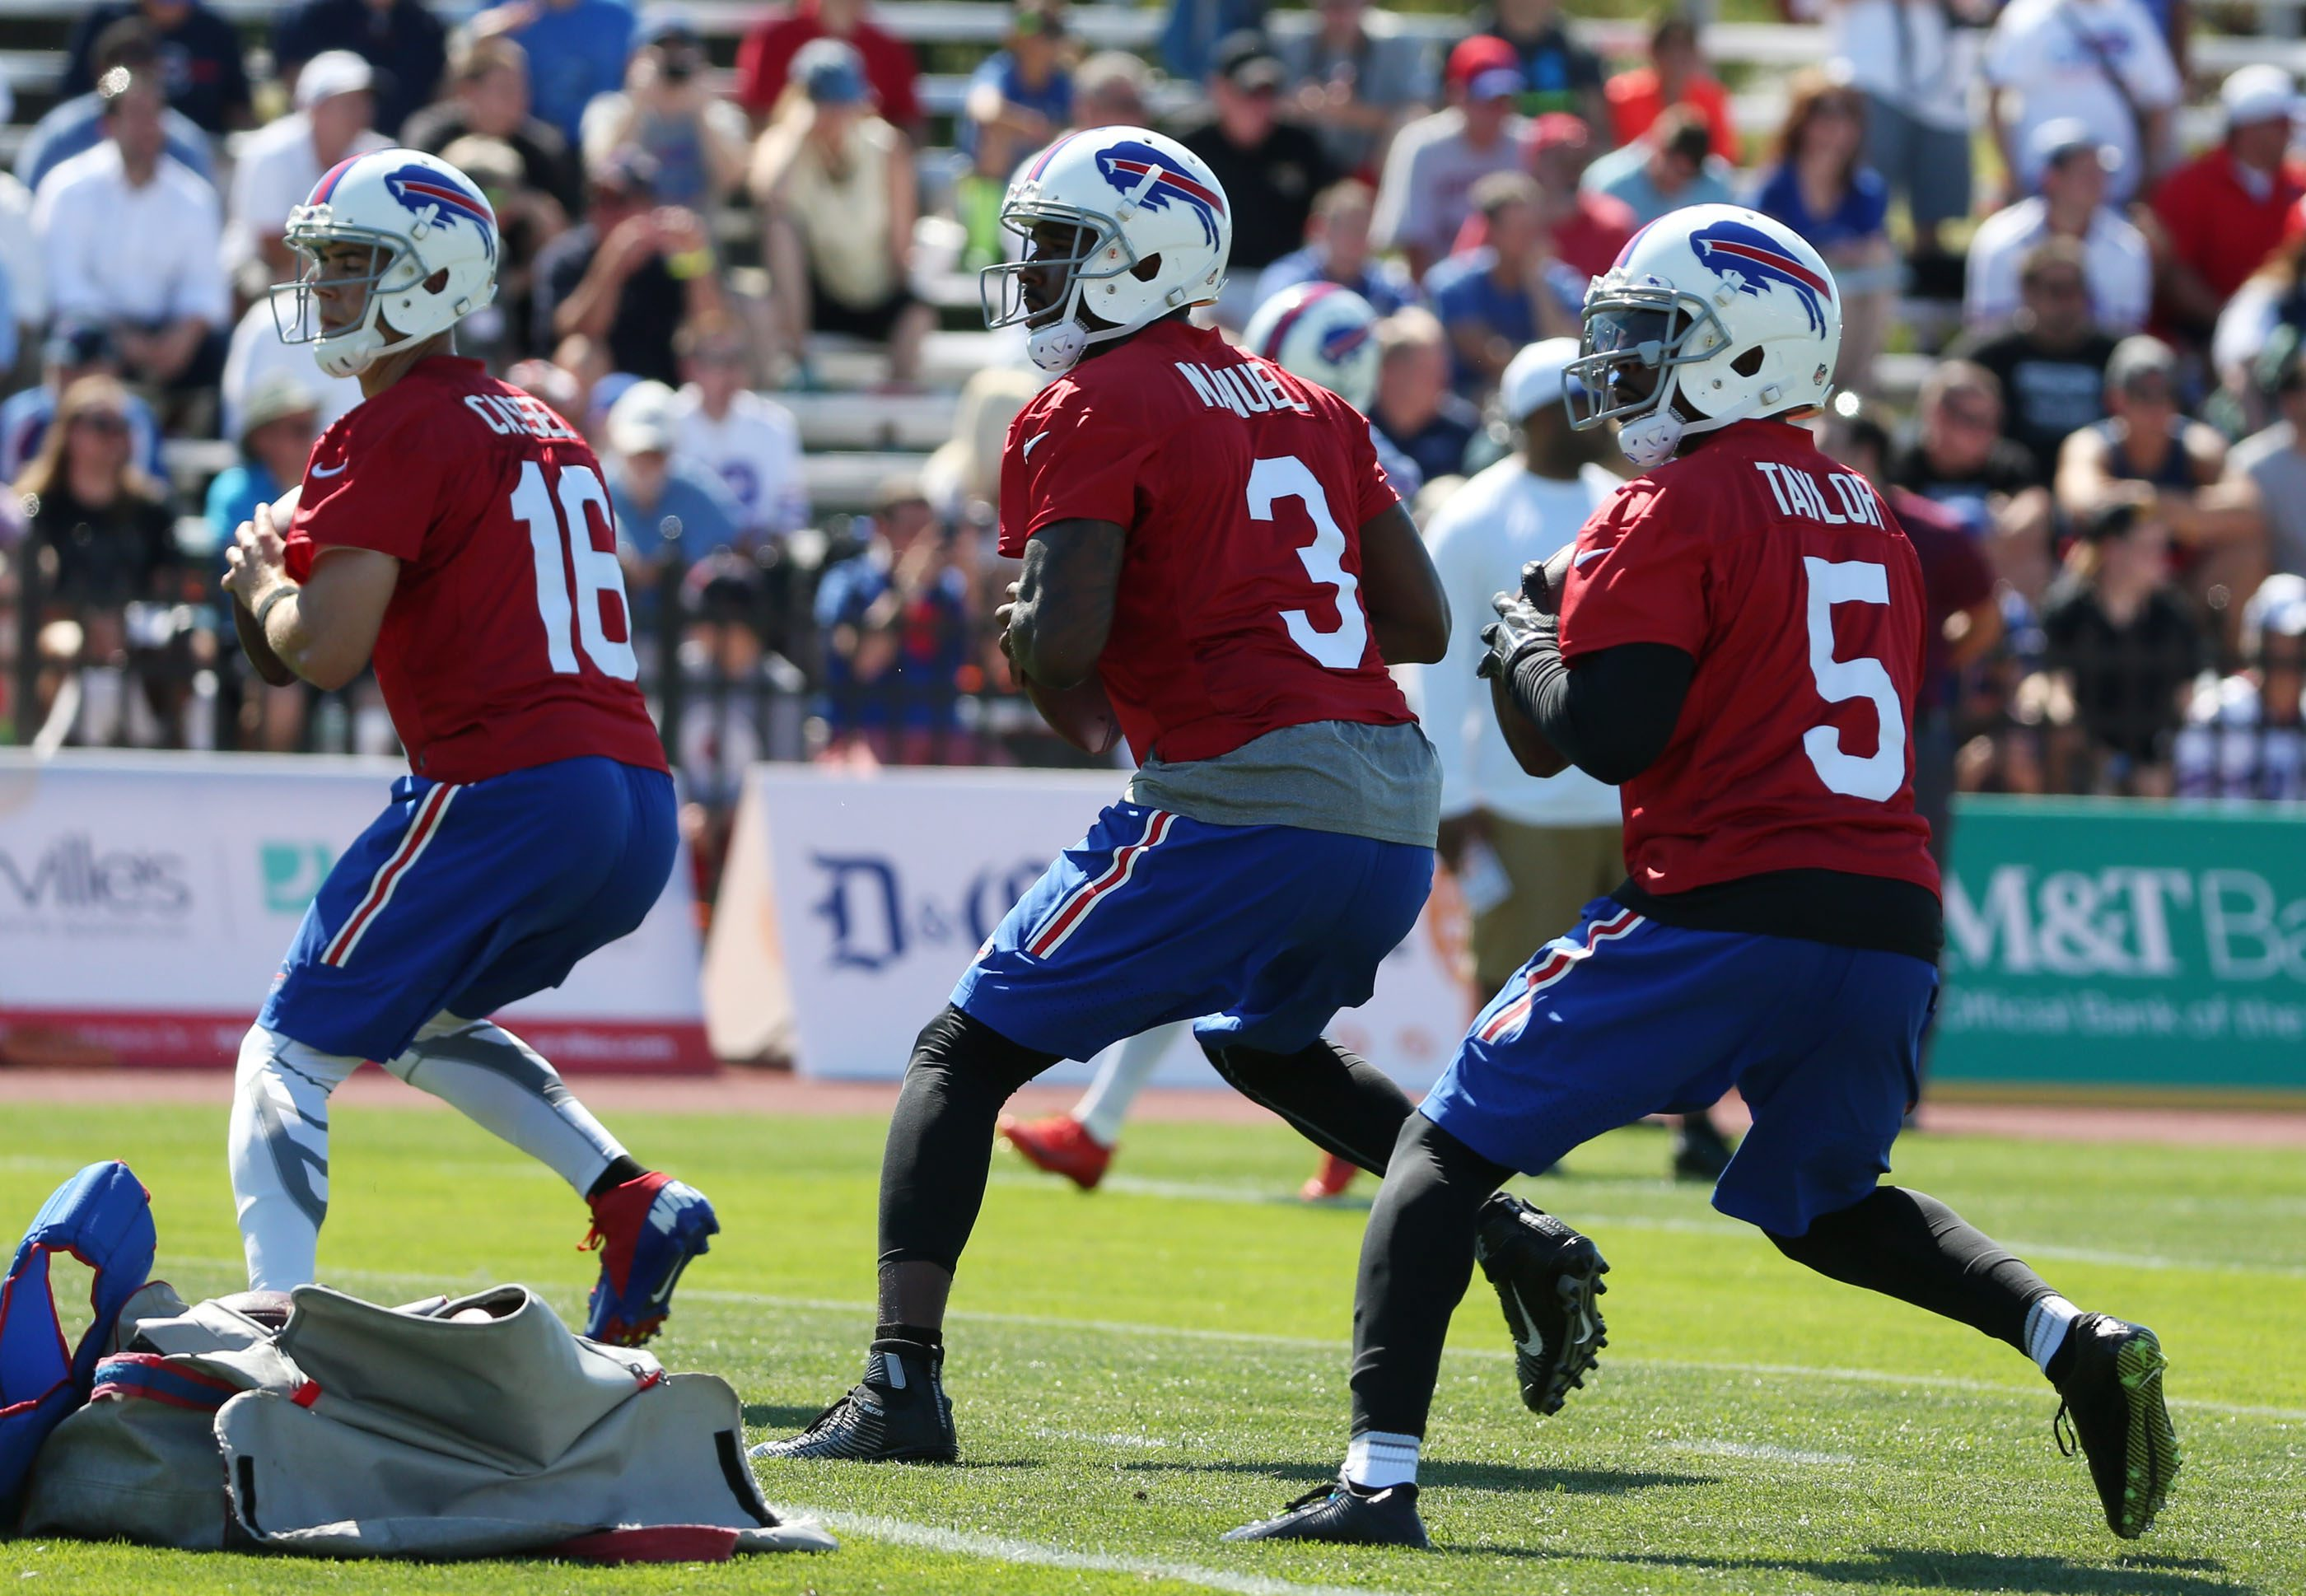 From left, Matt Cassel, EJ Manuel and Tyrod Taylor drop back to throw during the first day of Bills training camp at St. John Fisher College.